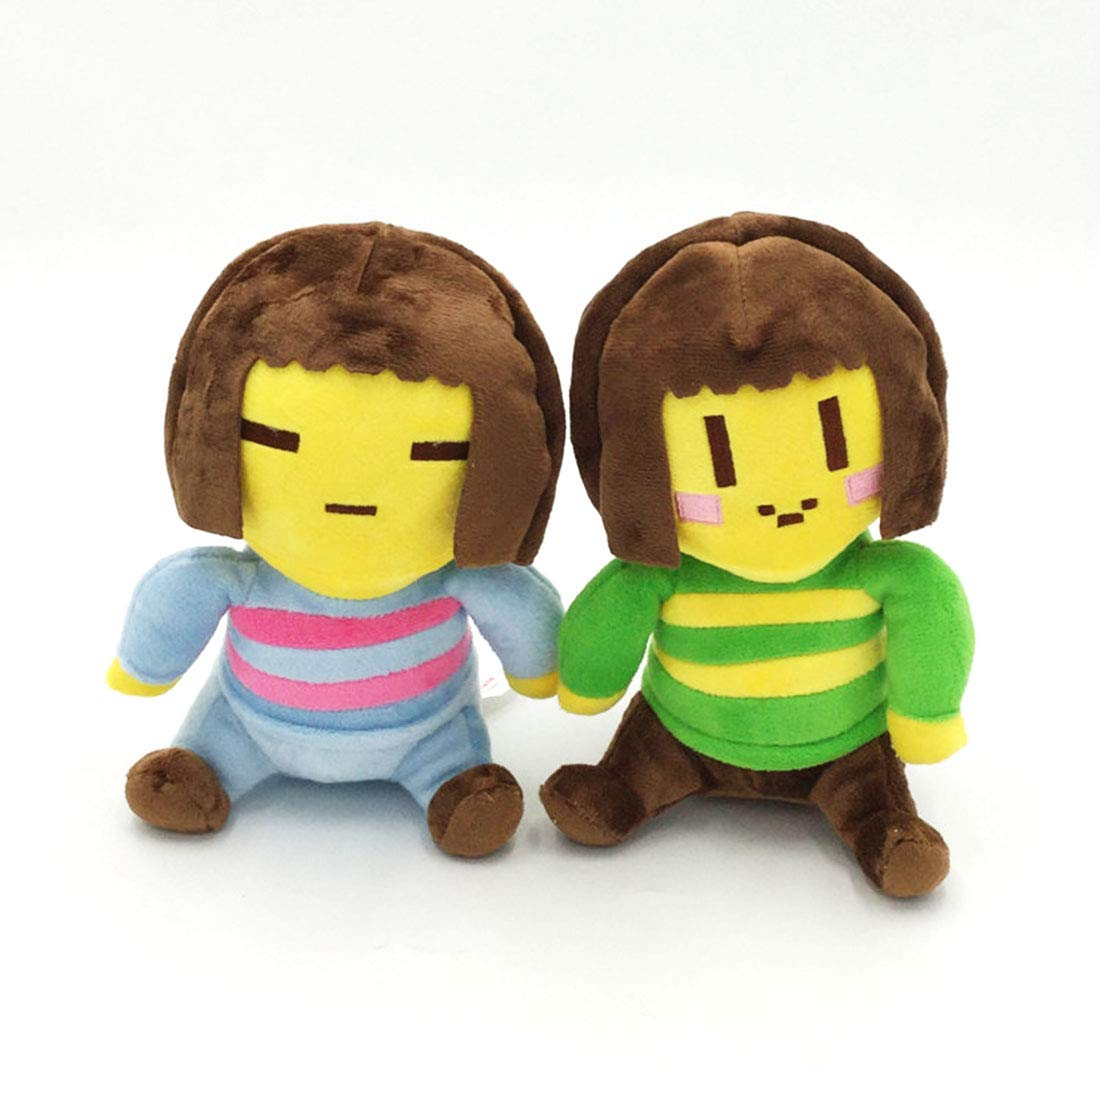 Helen-sky Undertale Frisk and Chara Plush Doll Soft Stuffed Toy Gift for Kids (2 Plush Toy) by Helen-sky